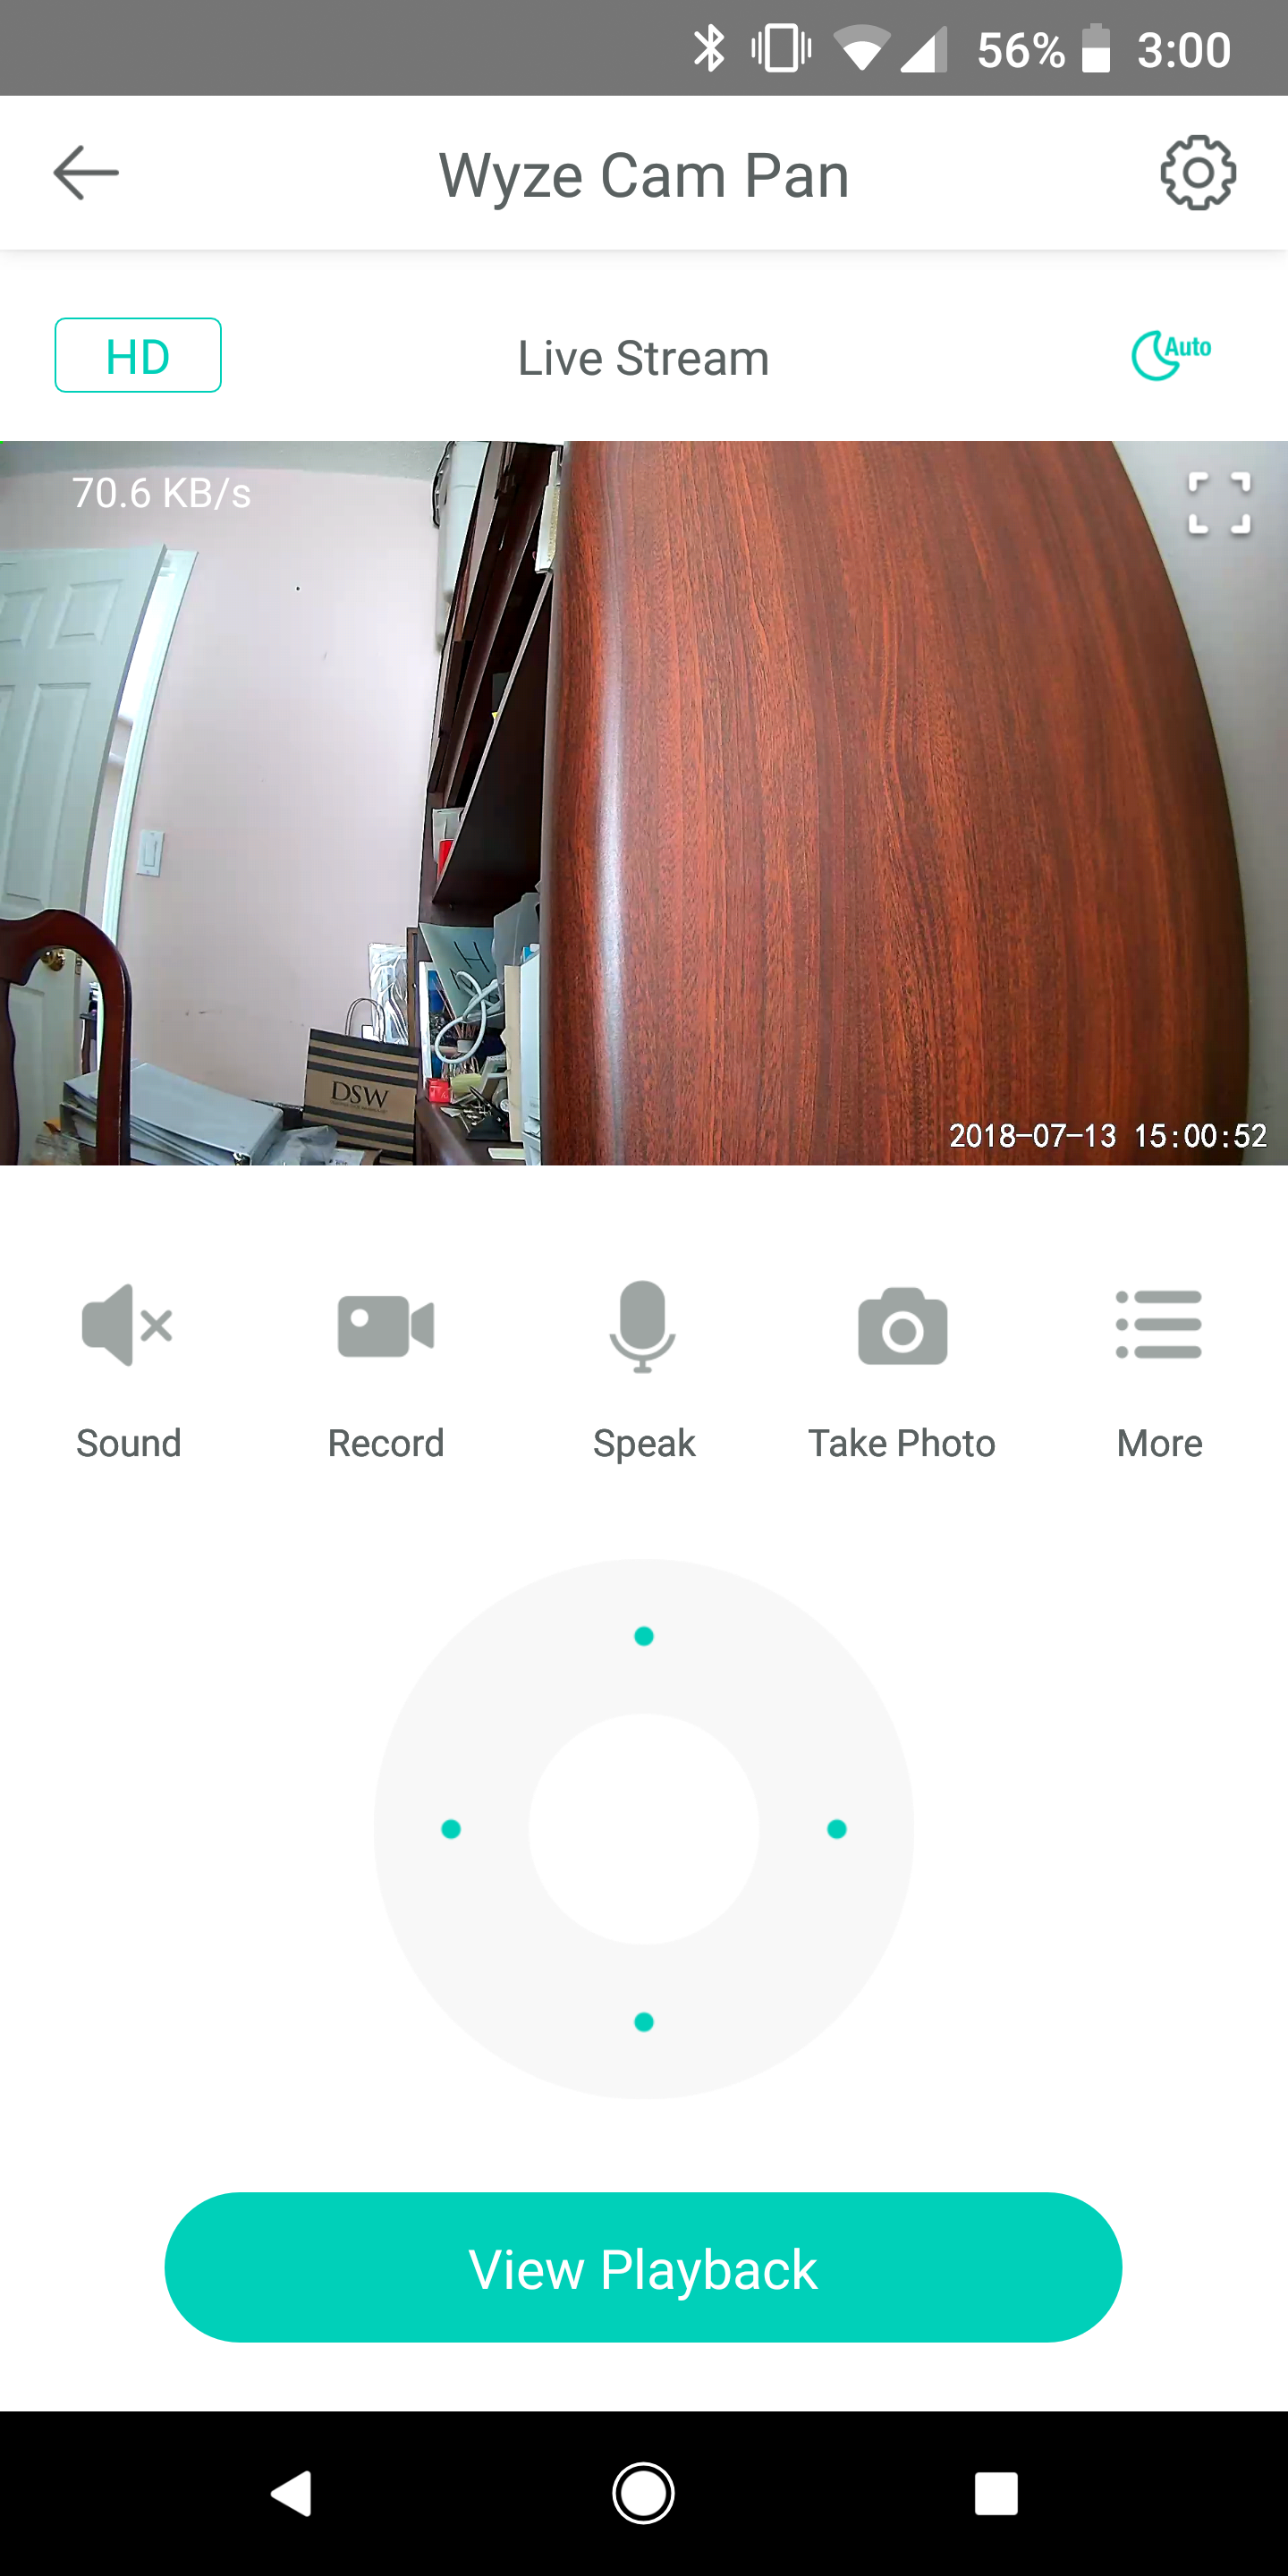 Using the Wyze Cam Pan in Canada – Wantboard